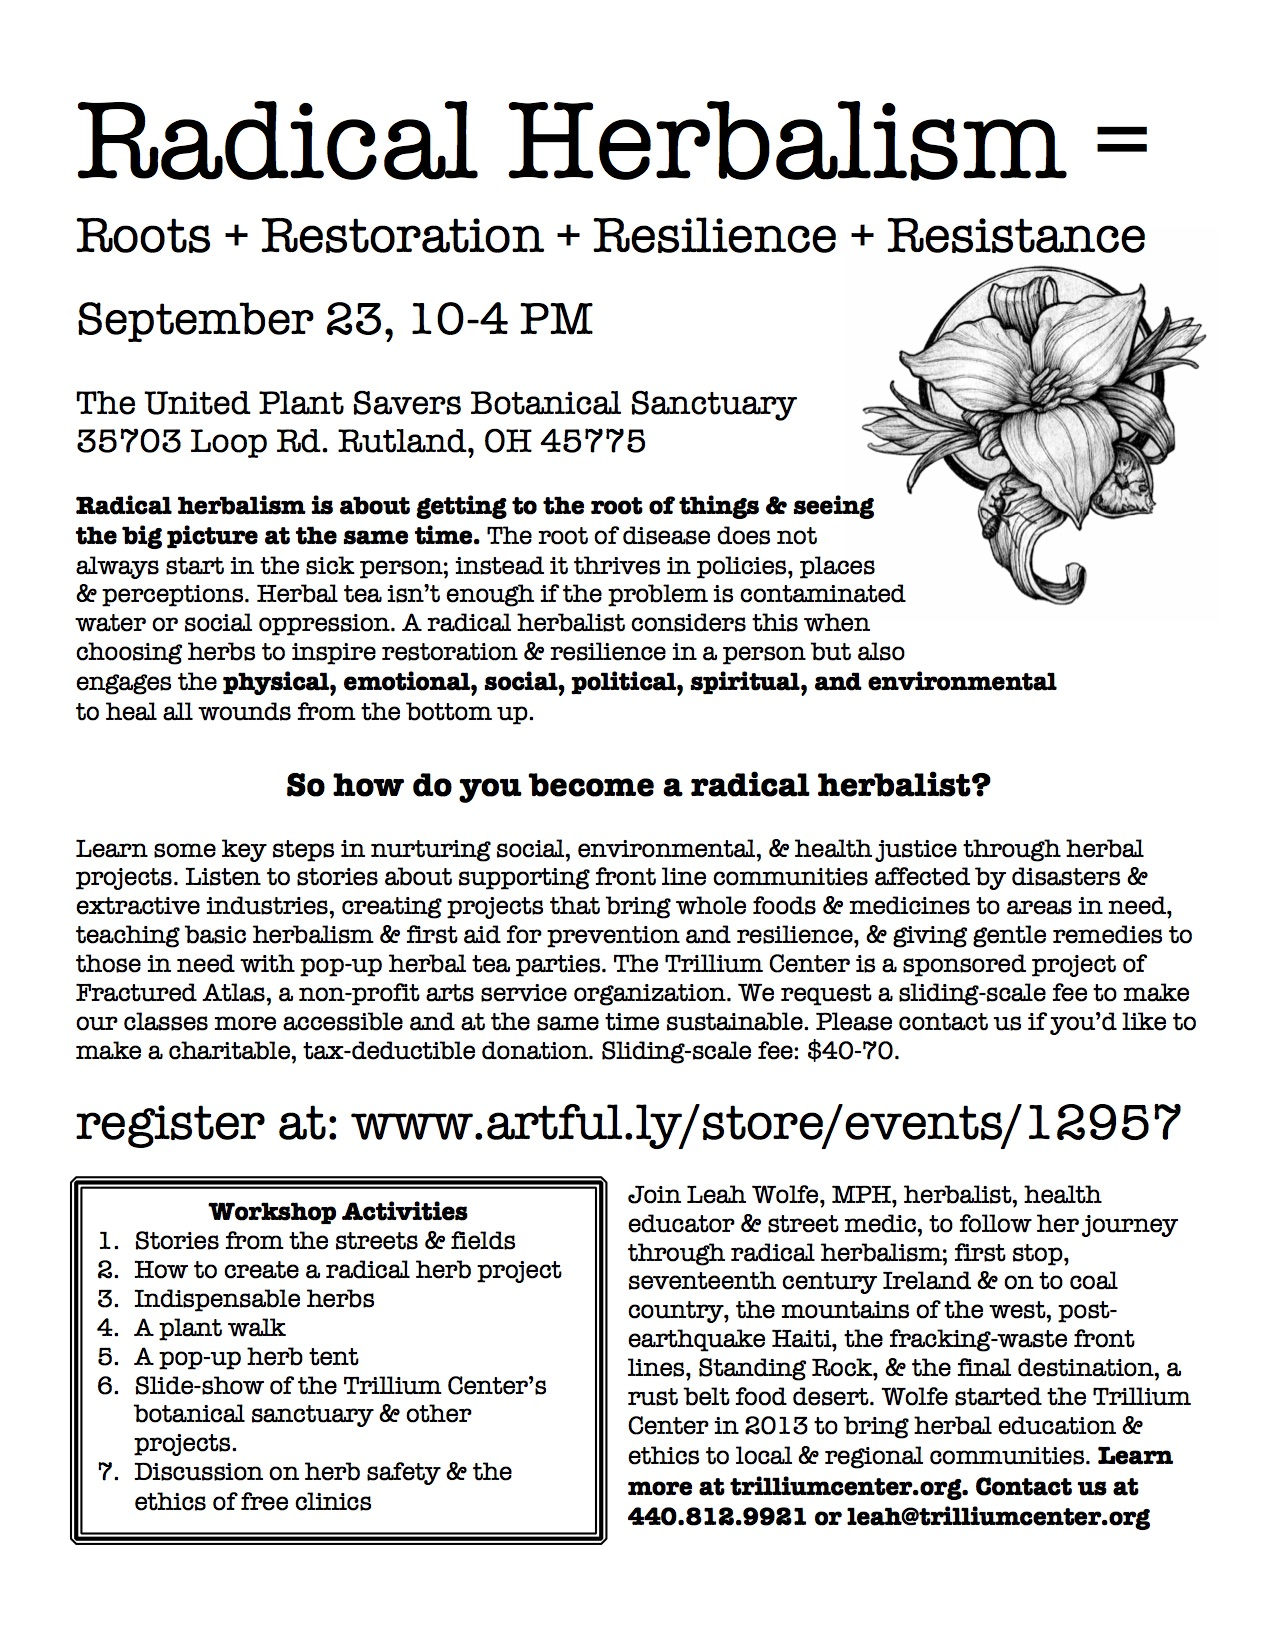 Radical Herbalism Workshop